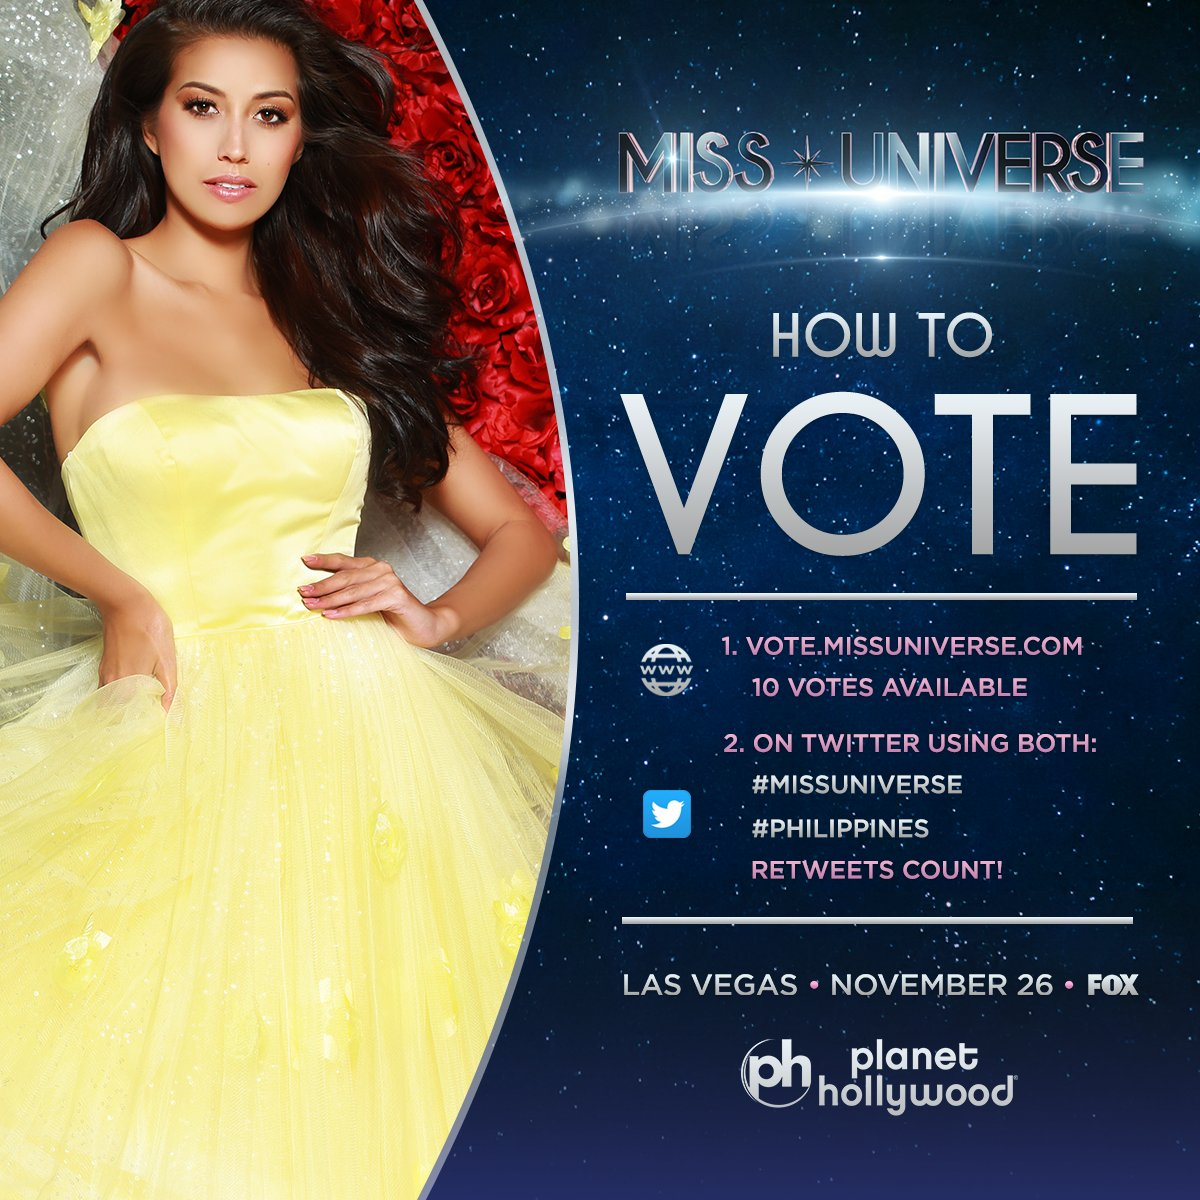 Voting for #MissUniverse is officially OPEN. RT to vote for Miss Universe #Philippines!   Watch her LIVE: Sunday Nov. 26 at 7PM on @FOXTV.